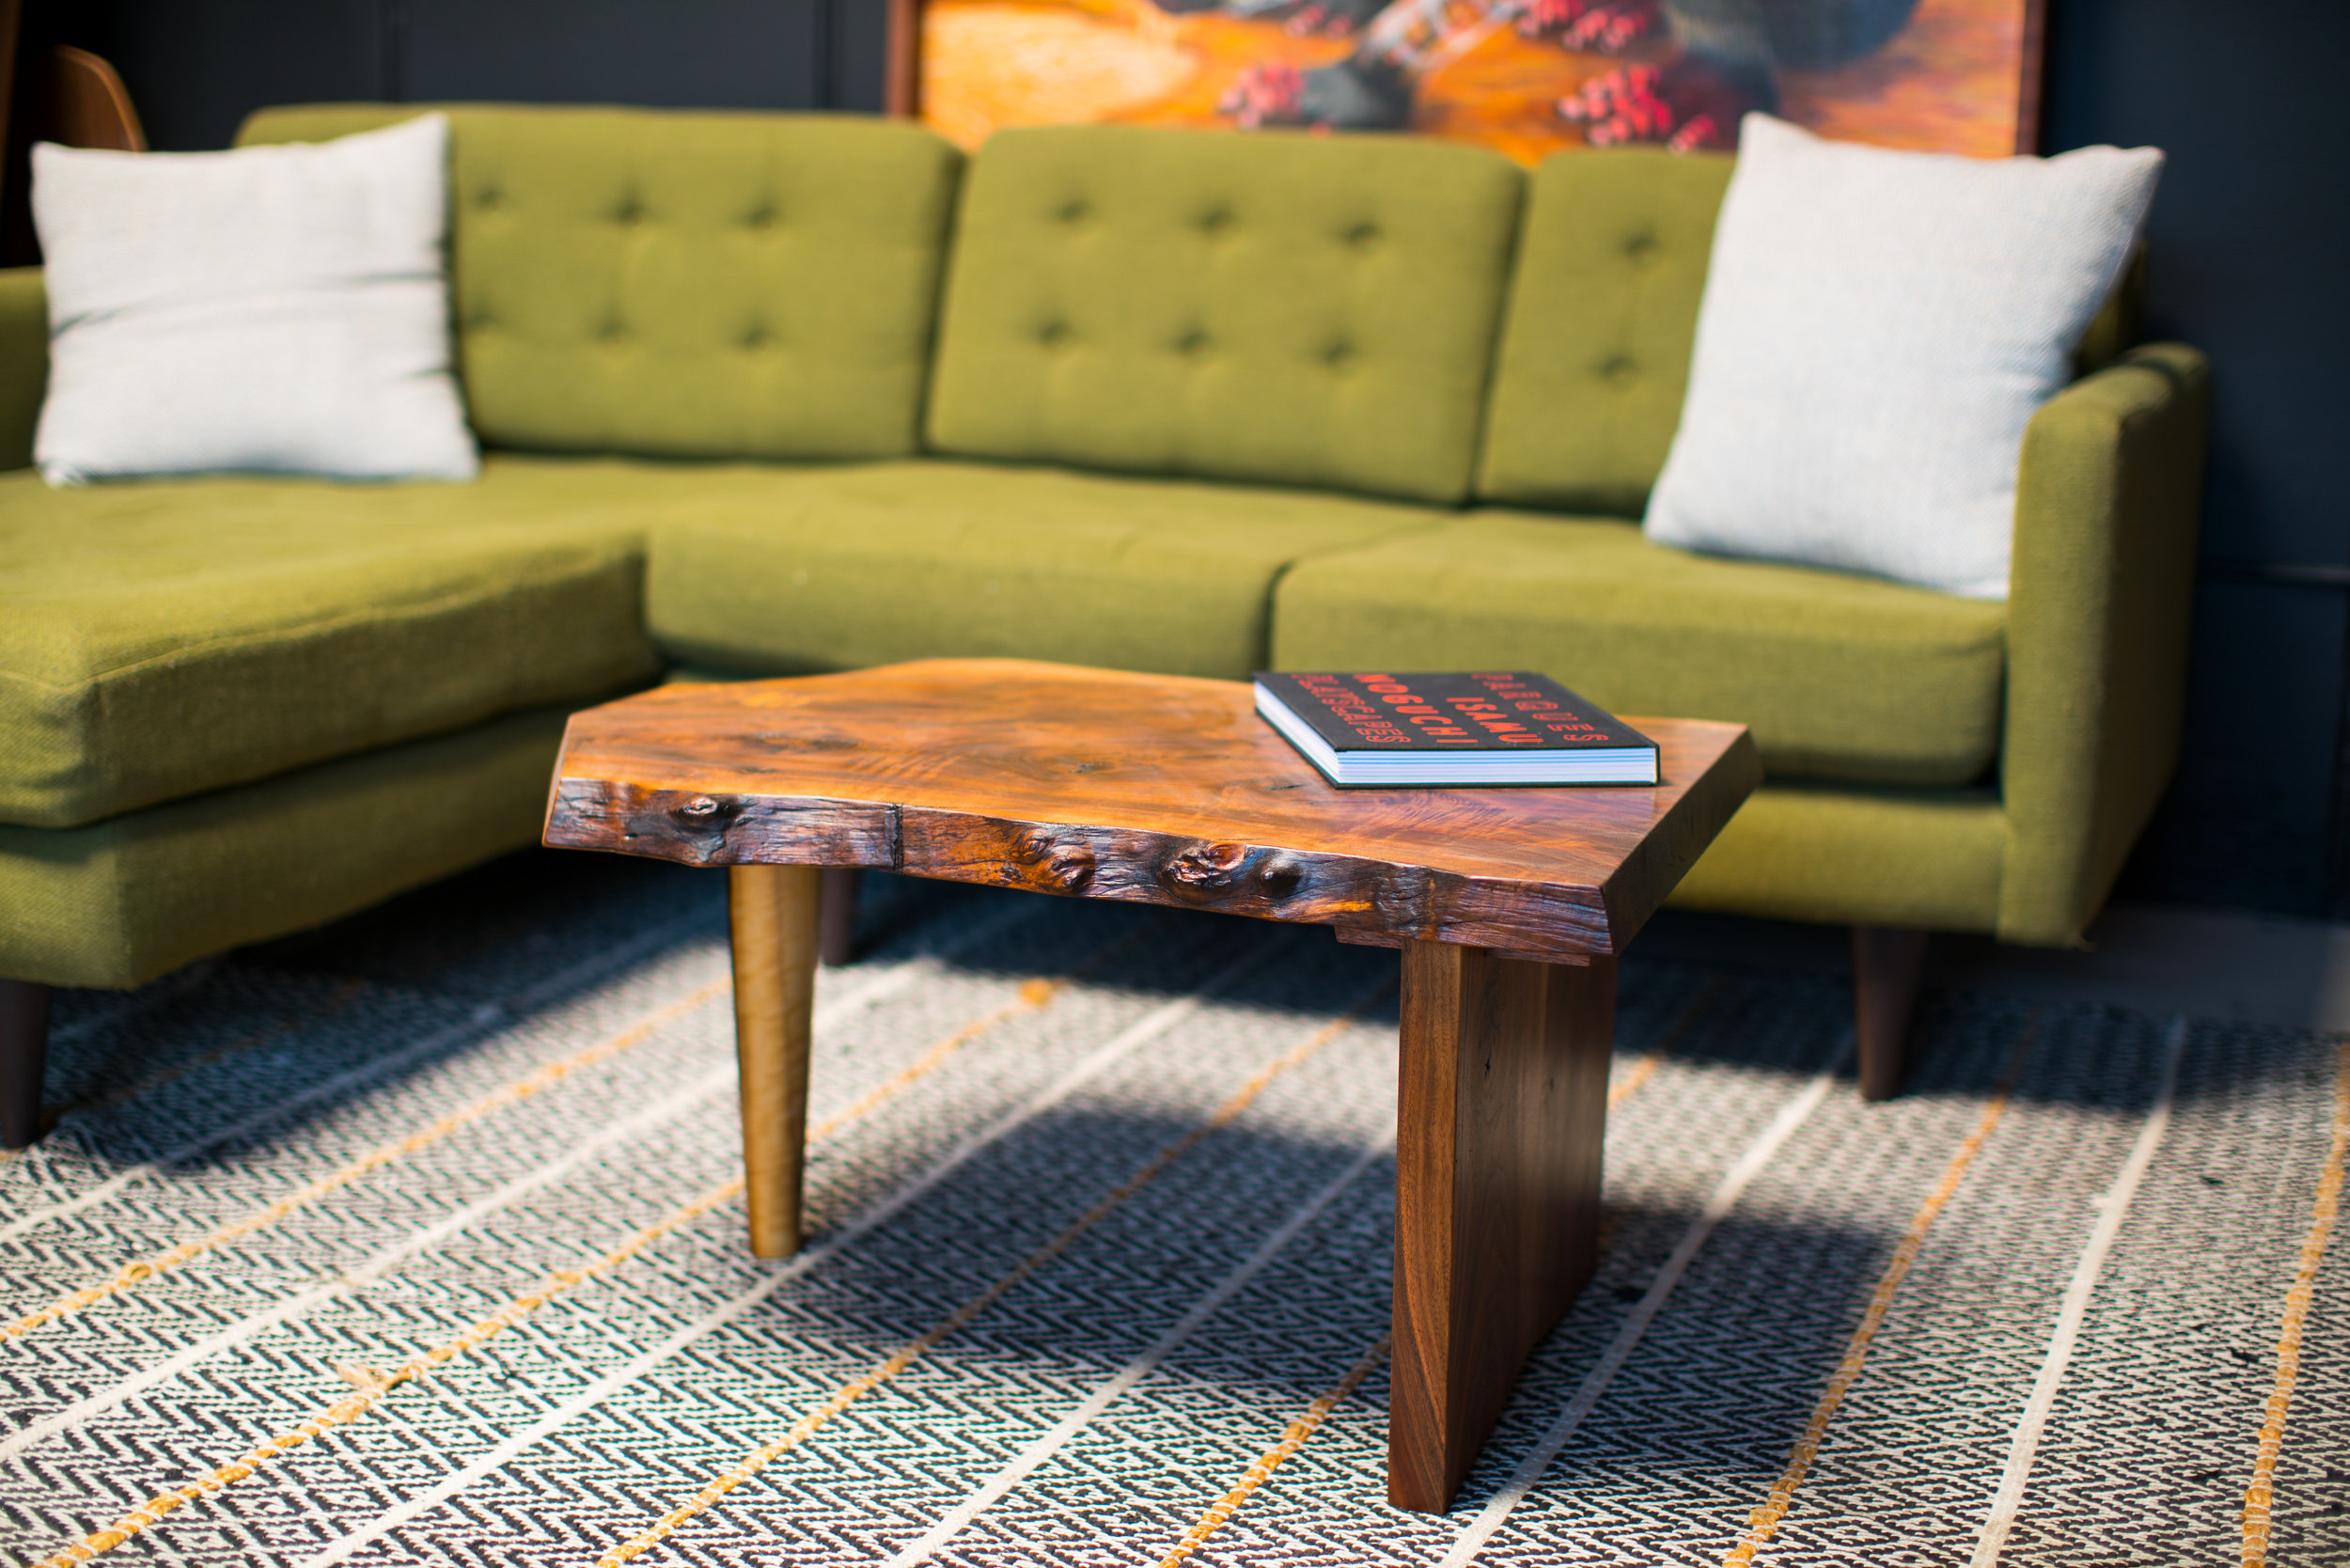 - Coffee tables